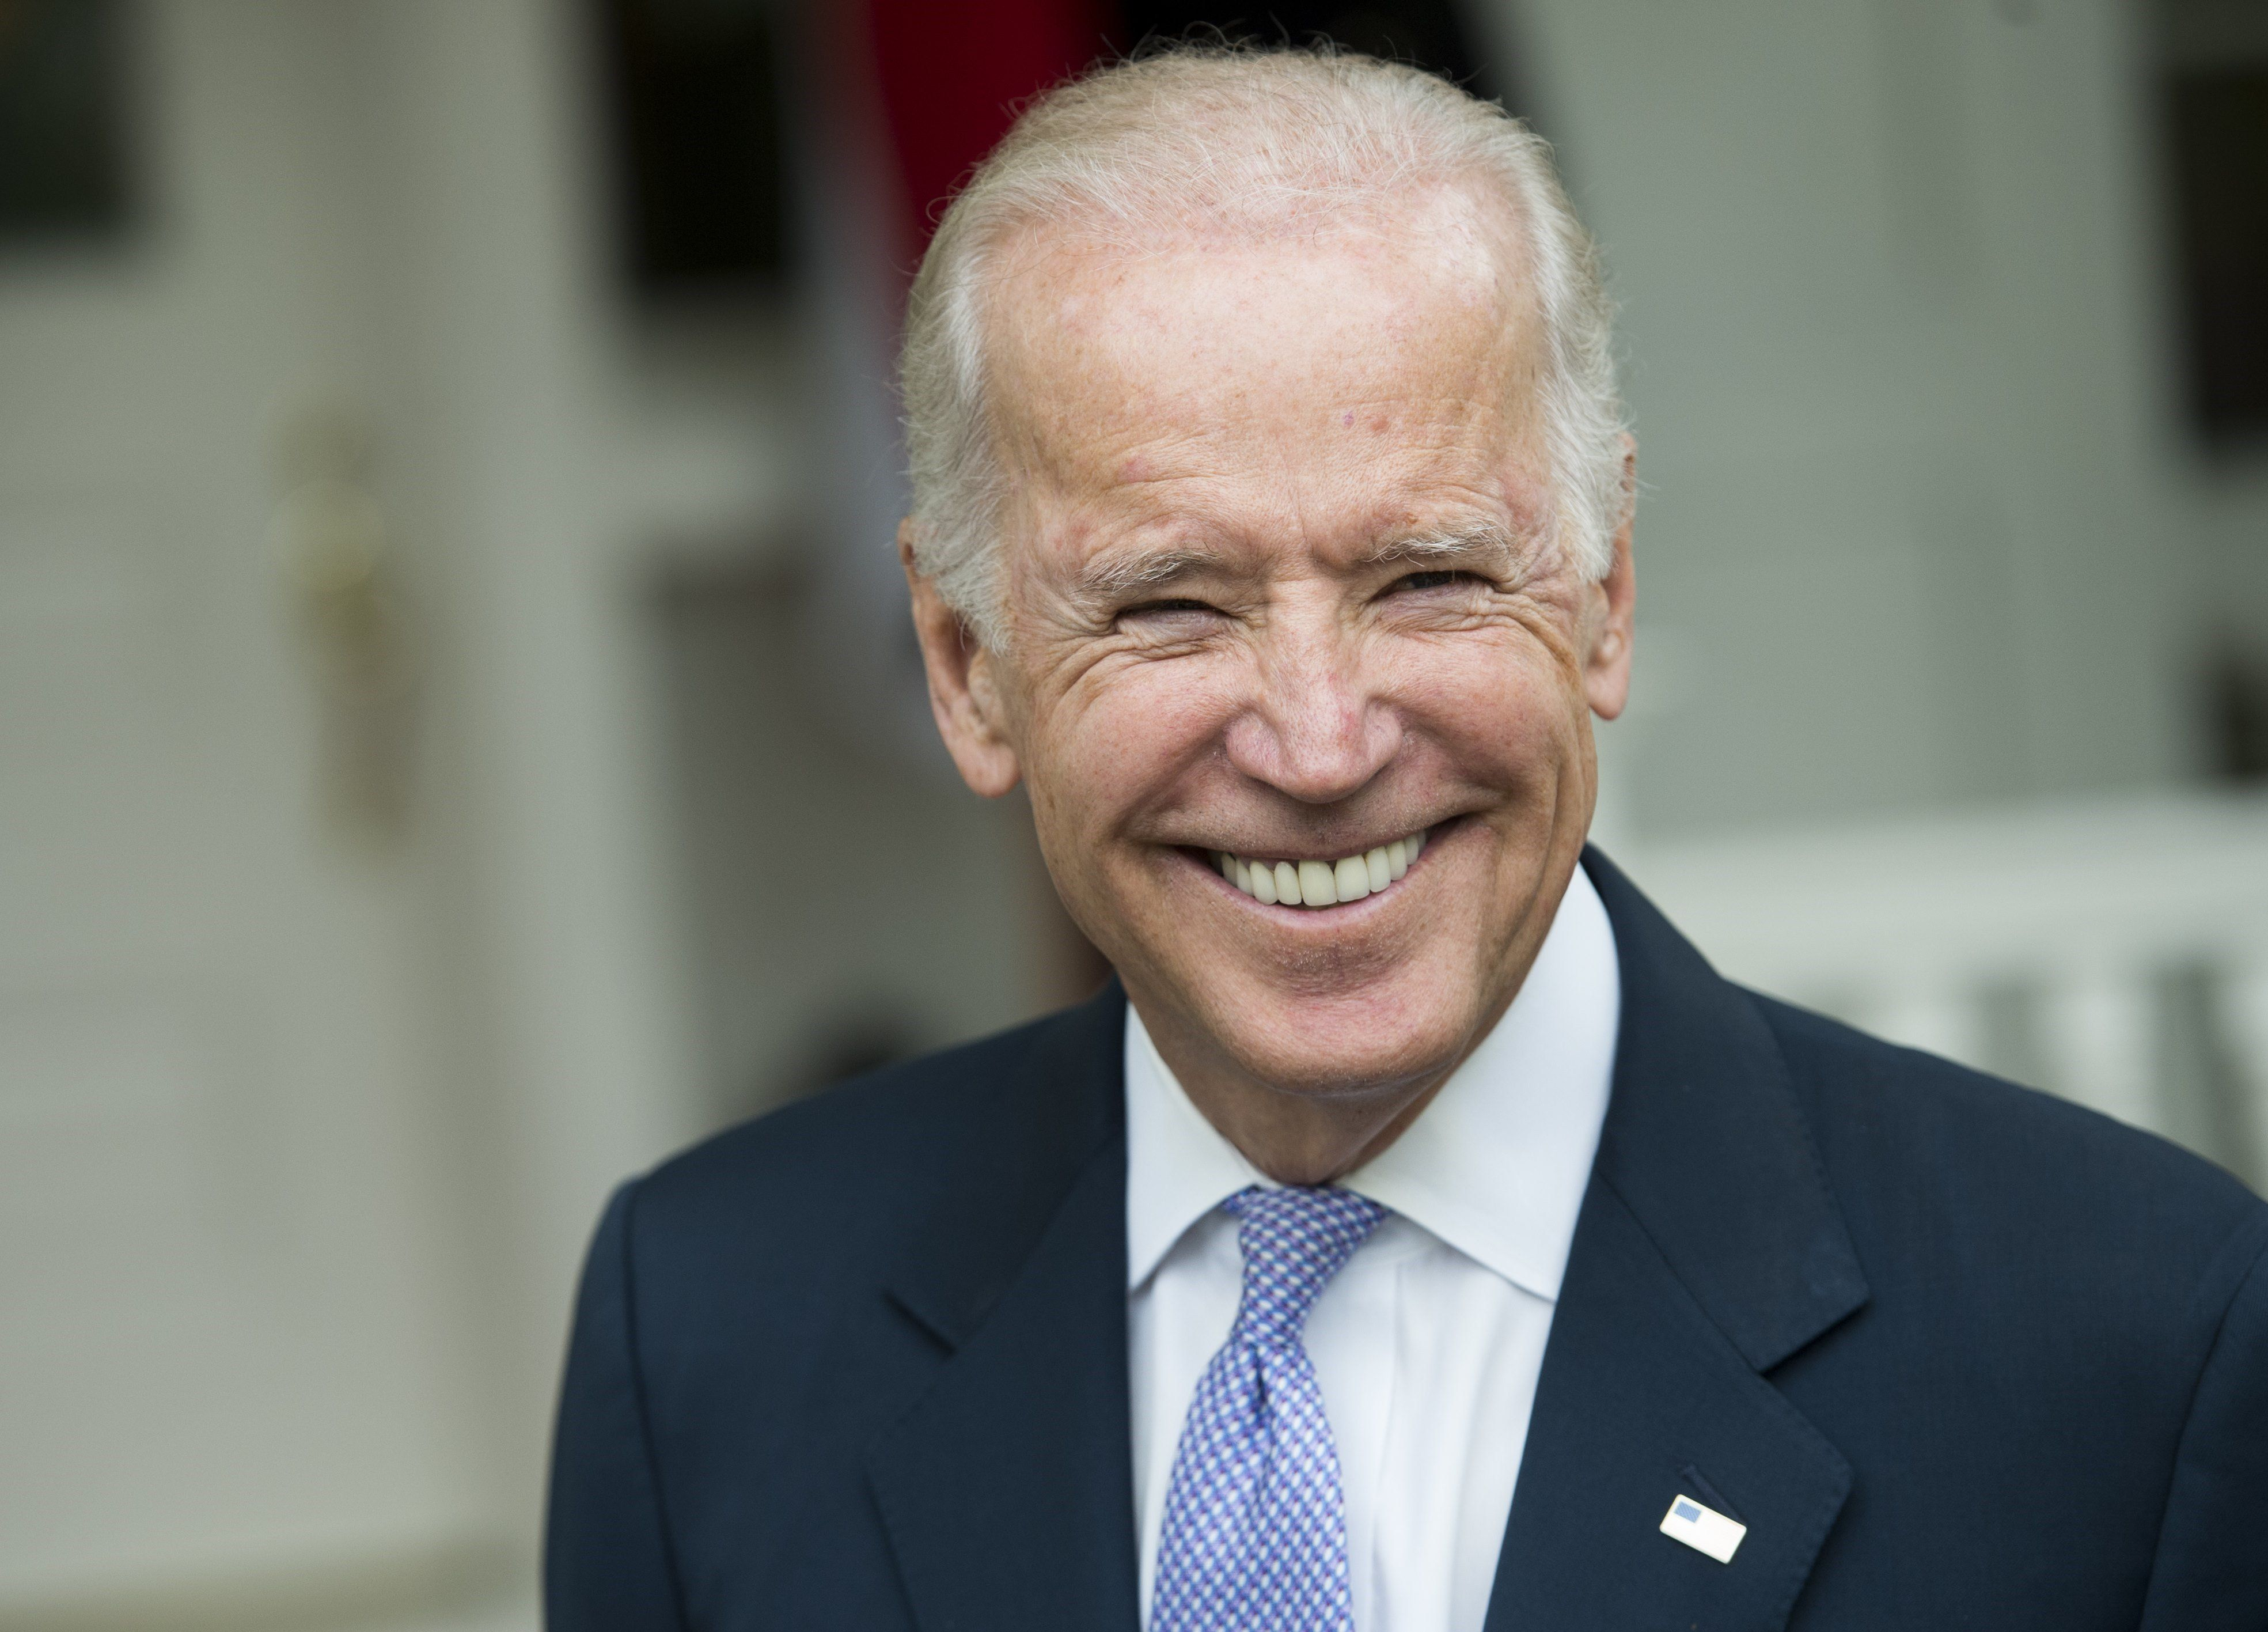 US Vice President Joe Biden laughs as he speaks to the media about the tentative budget deal between the White House and Congress at the Naval Observatory in Washington, DC, October 27, 2015. AFP PHOTO / SAUL LOEB        (Photo credit should read SAUL LOEB/AFP/Getty Images)